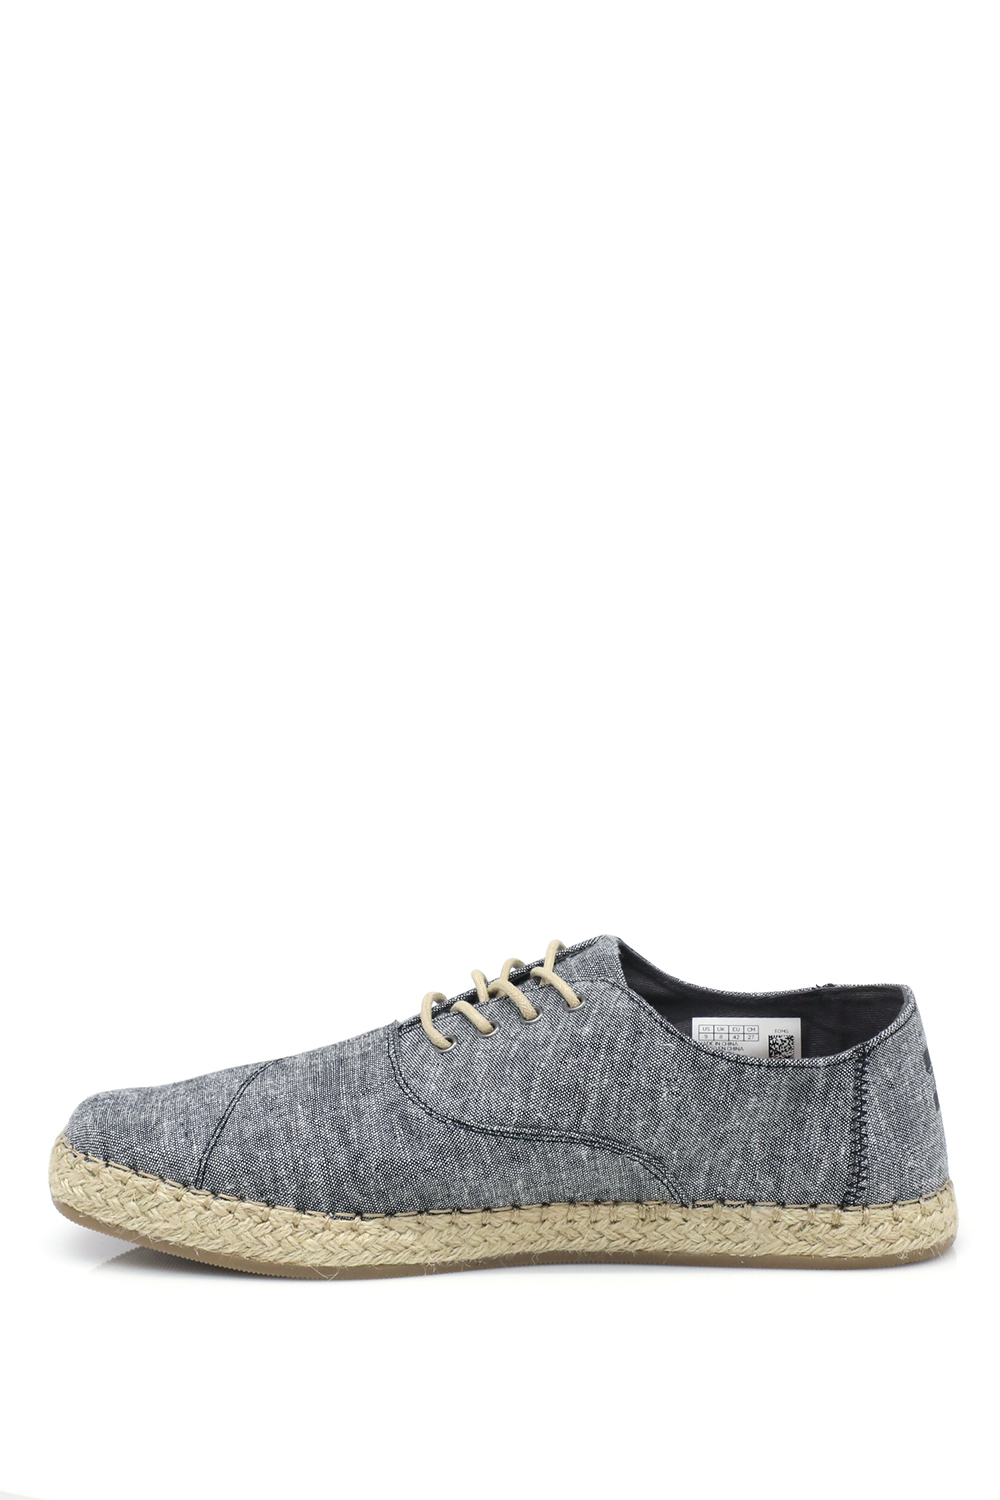 TOMS – Ανδρικά sneakers TOMS γκρι